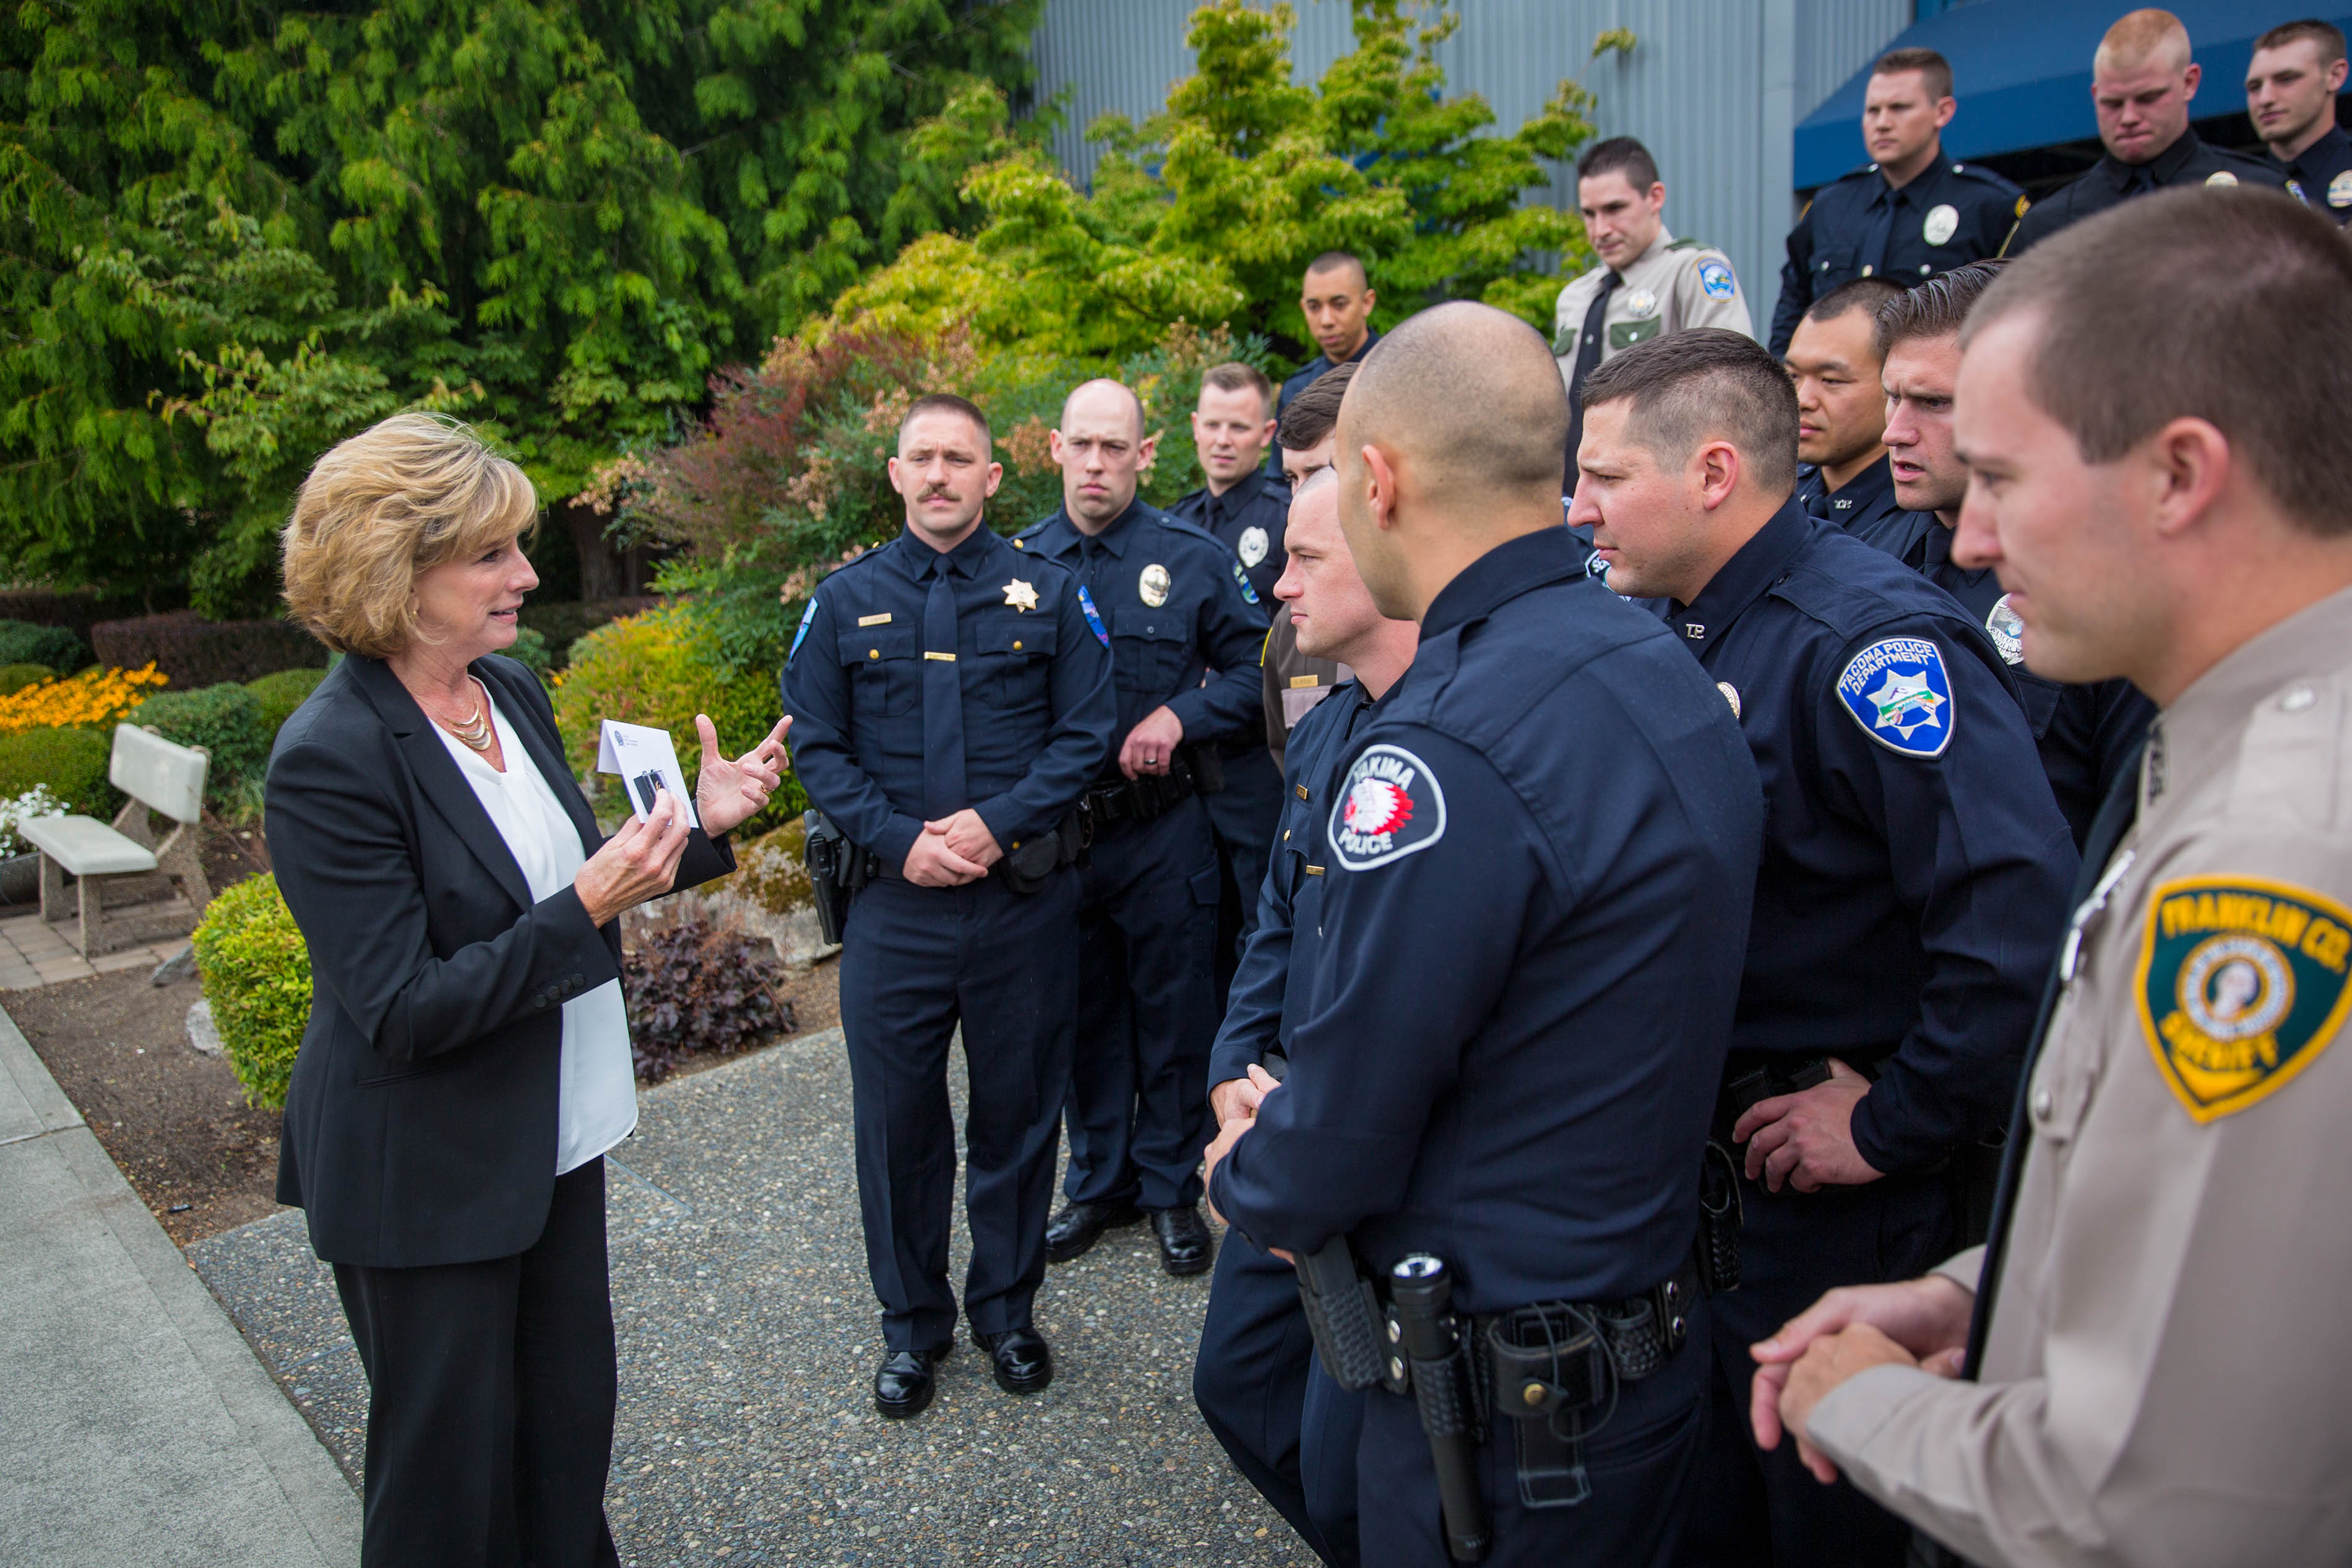 Empathy Lessons Training Police To >> Upstanders The Empathetic Police Academy